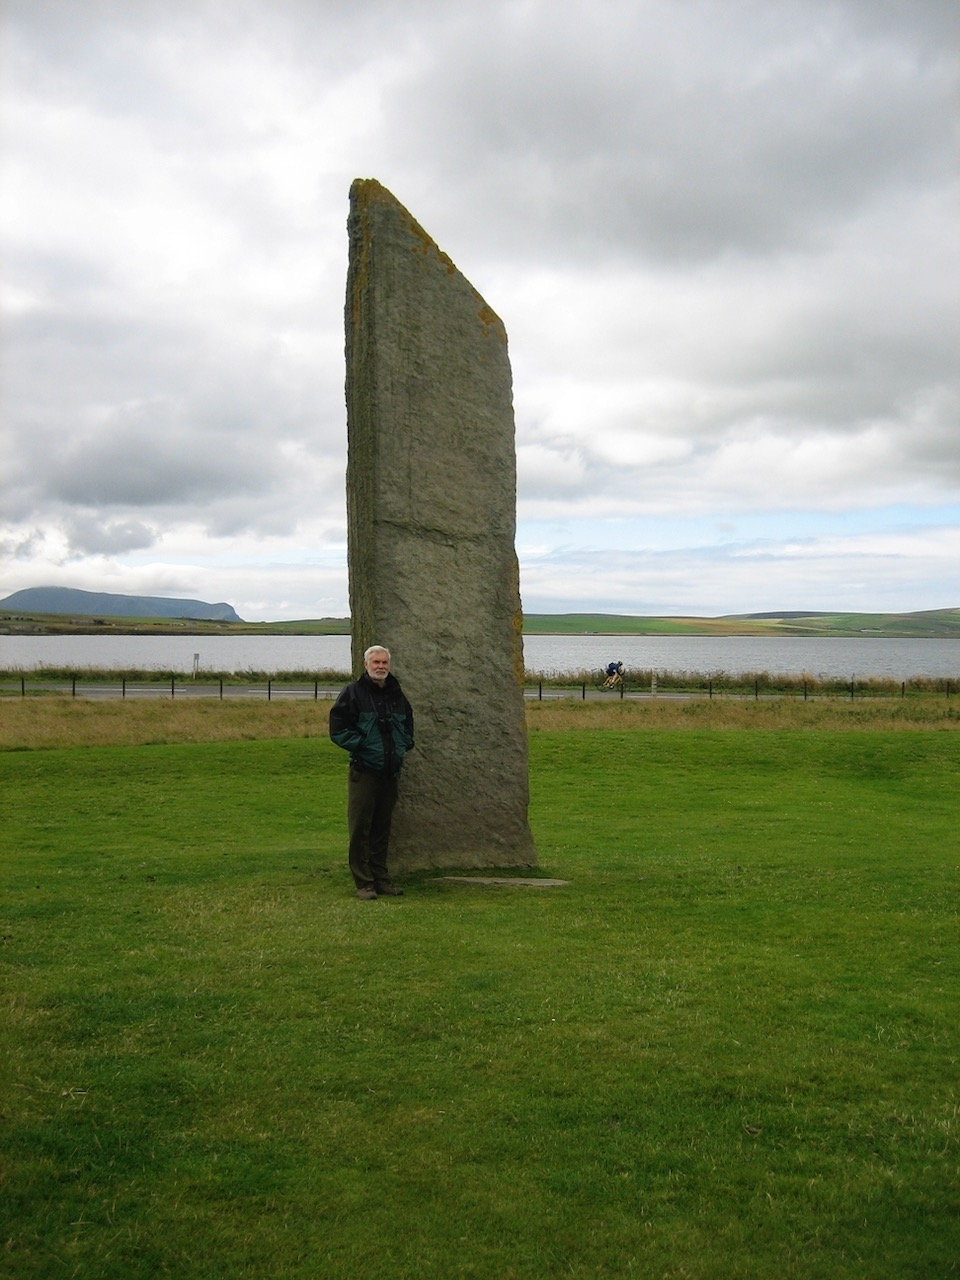 One of the remaining Standing Stones of Stenness